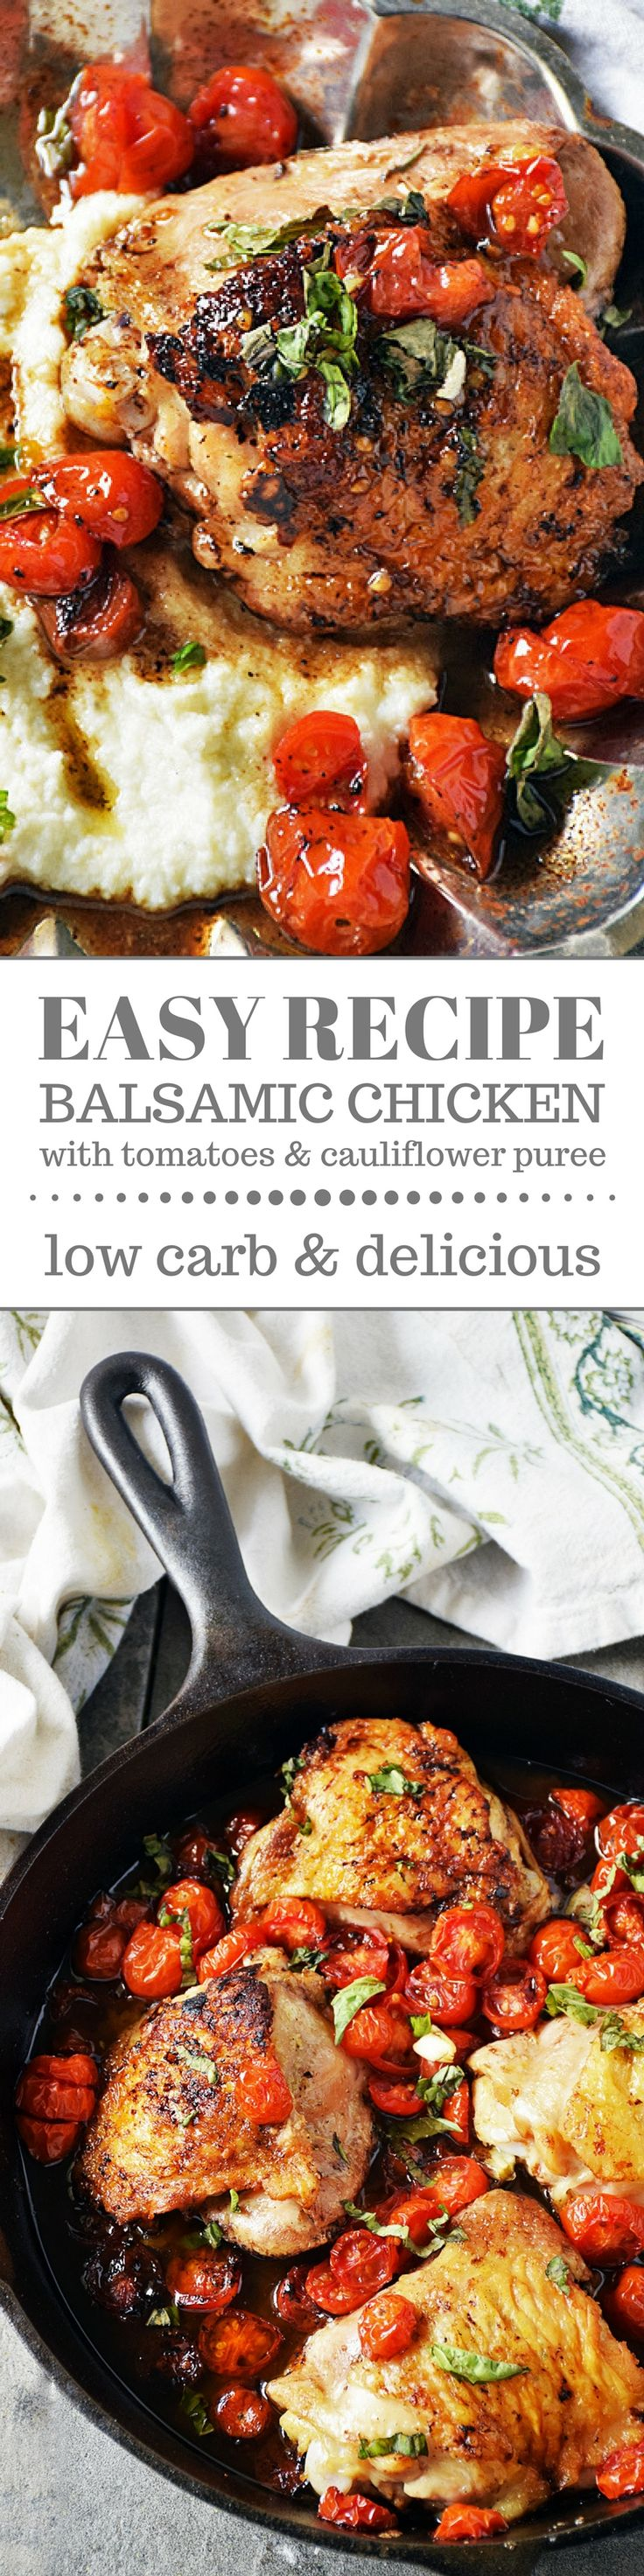 Easy Balsamic Chicken with Tomatoes is an easy recipe that cooks all in one skillet and is loaded with fresh ingredients to maximize flavor. Paired with a cauliflower puree, this recipes makes a delicious low carb meal.